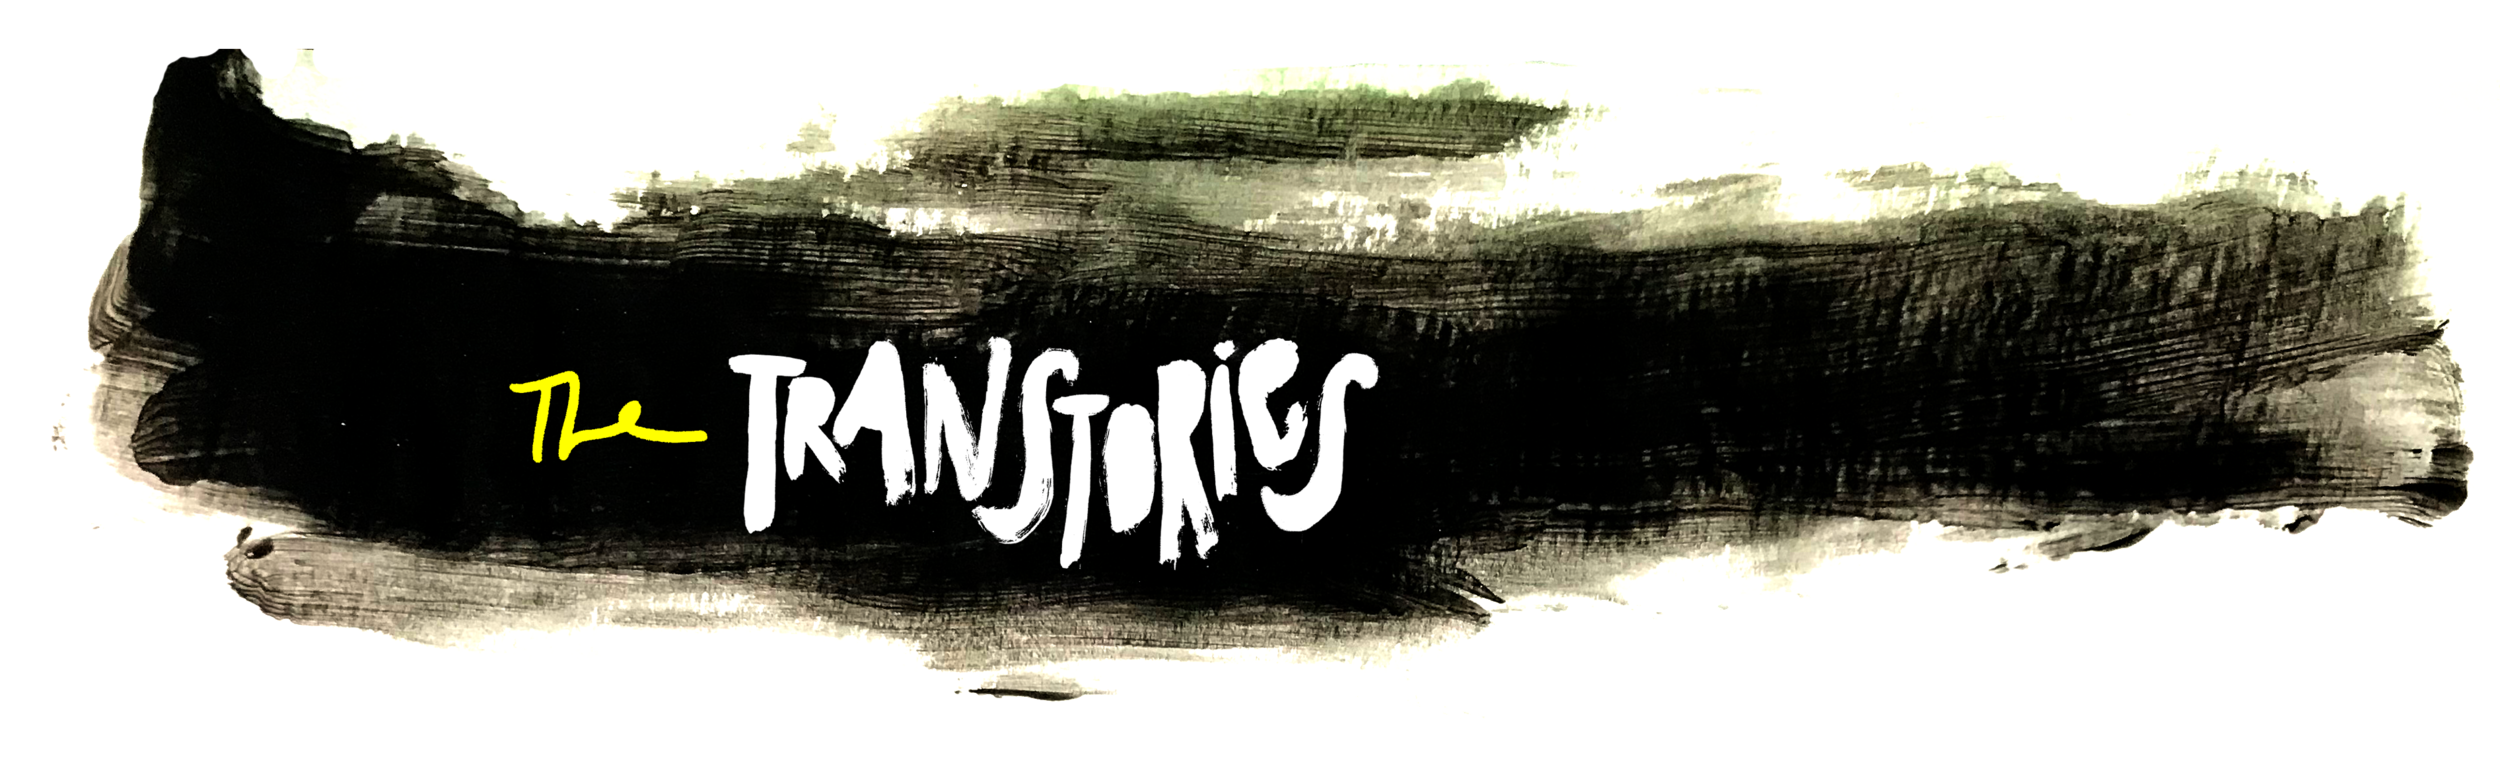 the-transtories-banner.png